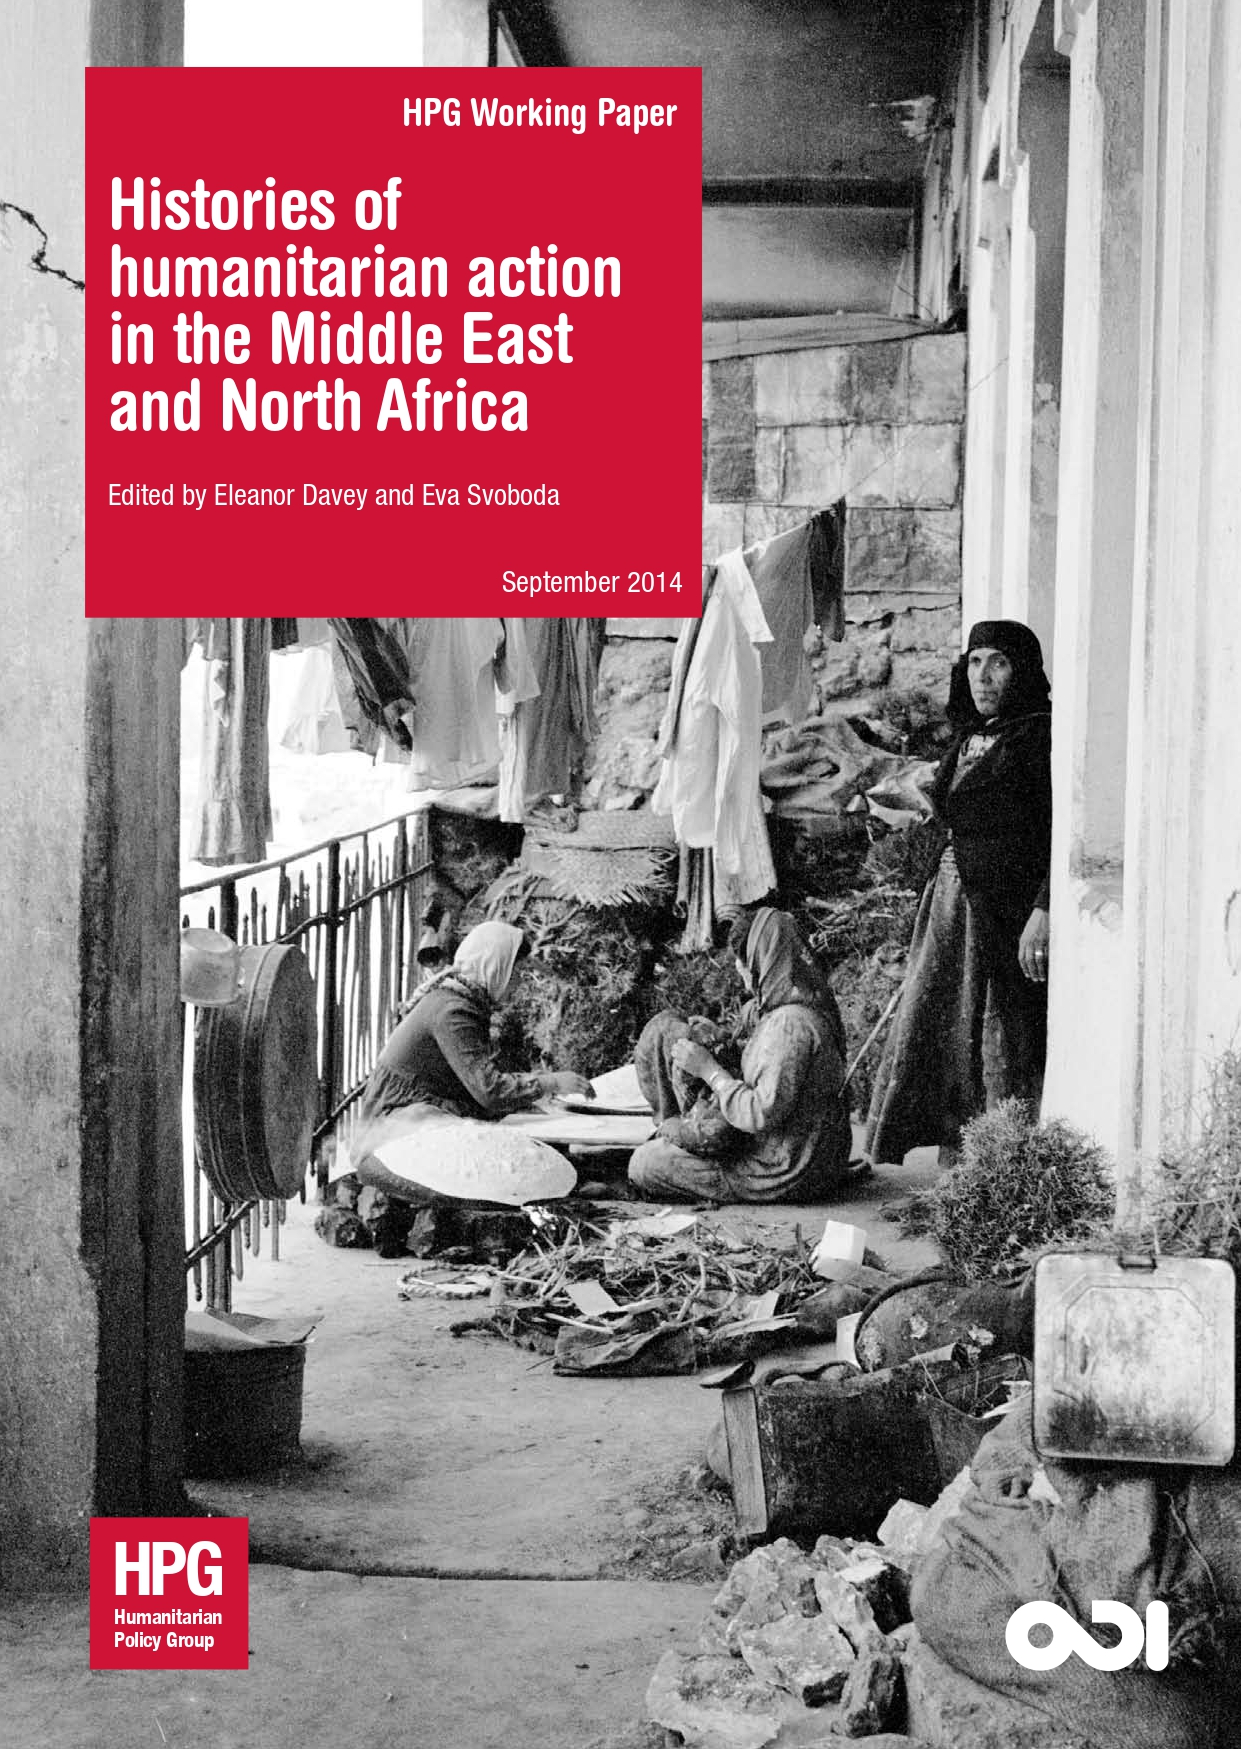 Keith David Watenpaugh, Modern humanitarianism and the Year of the Locust: US relief in Palestine and Lebanon 1914–18